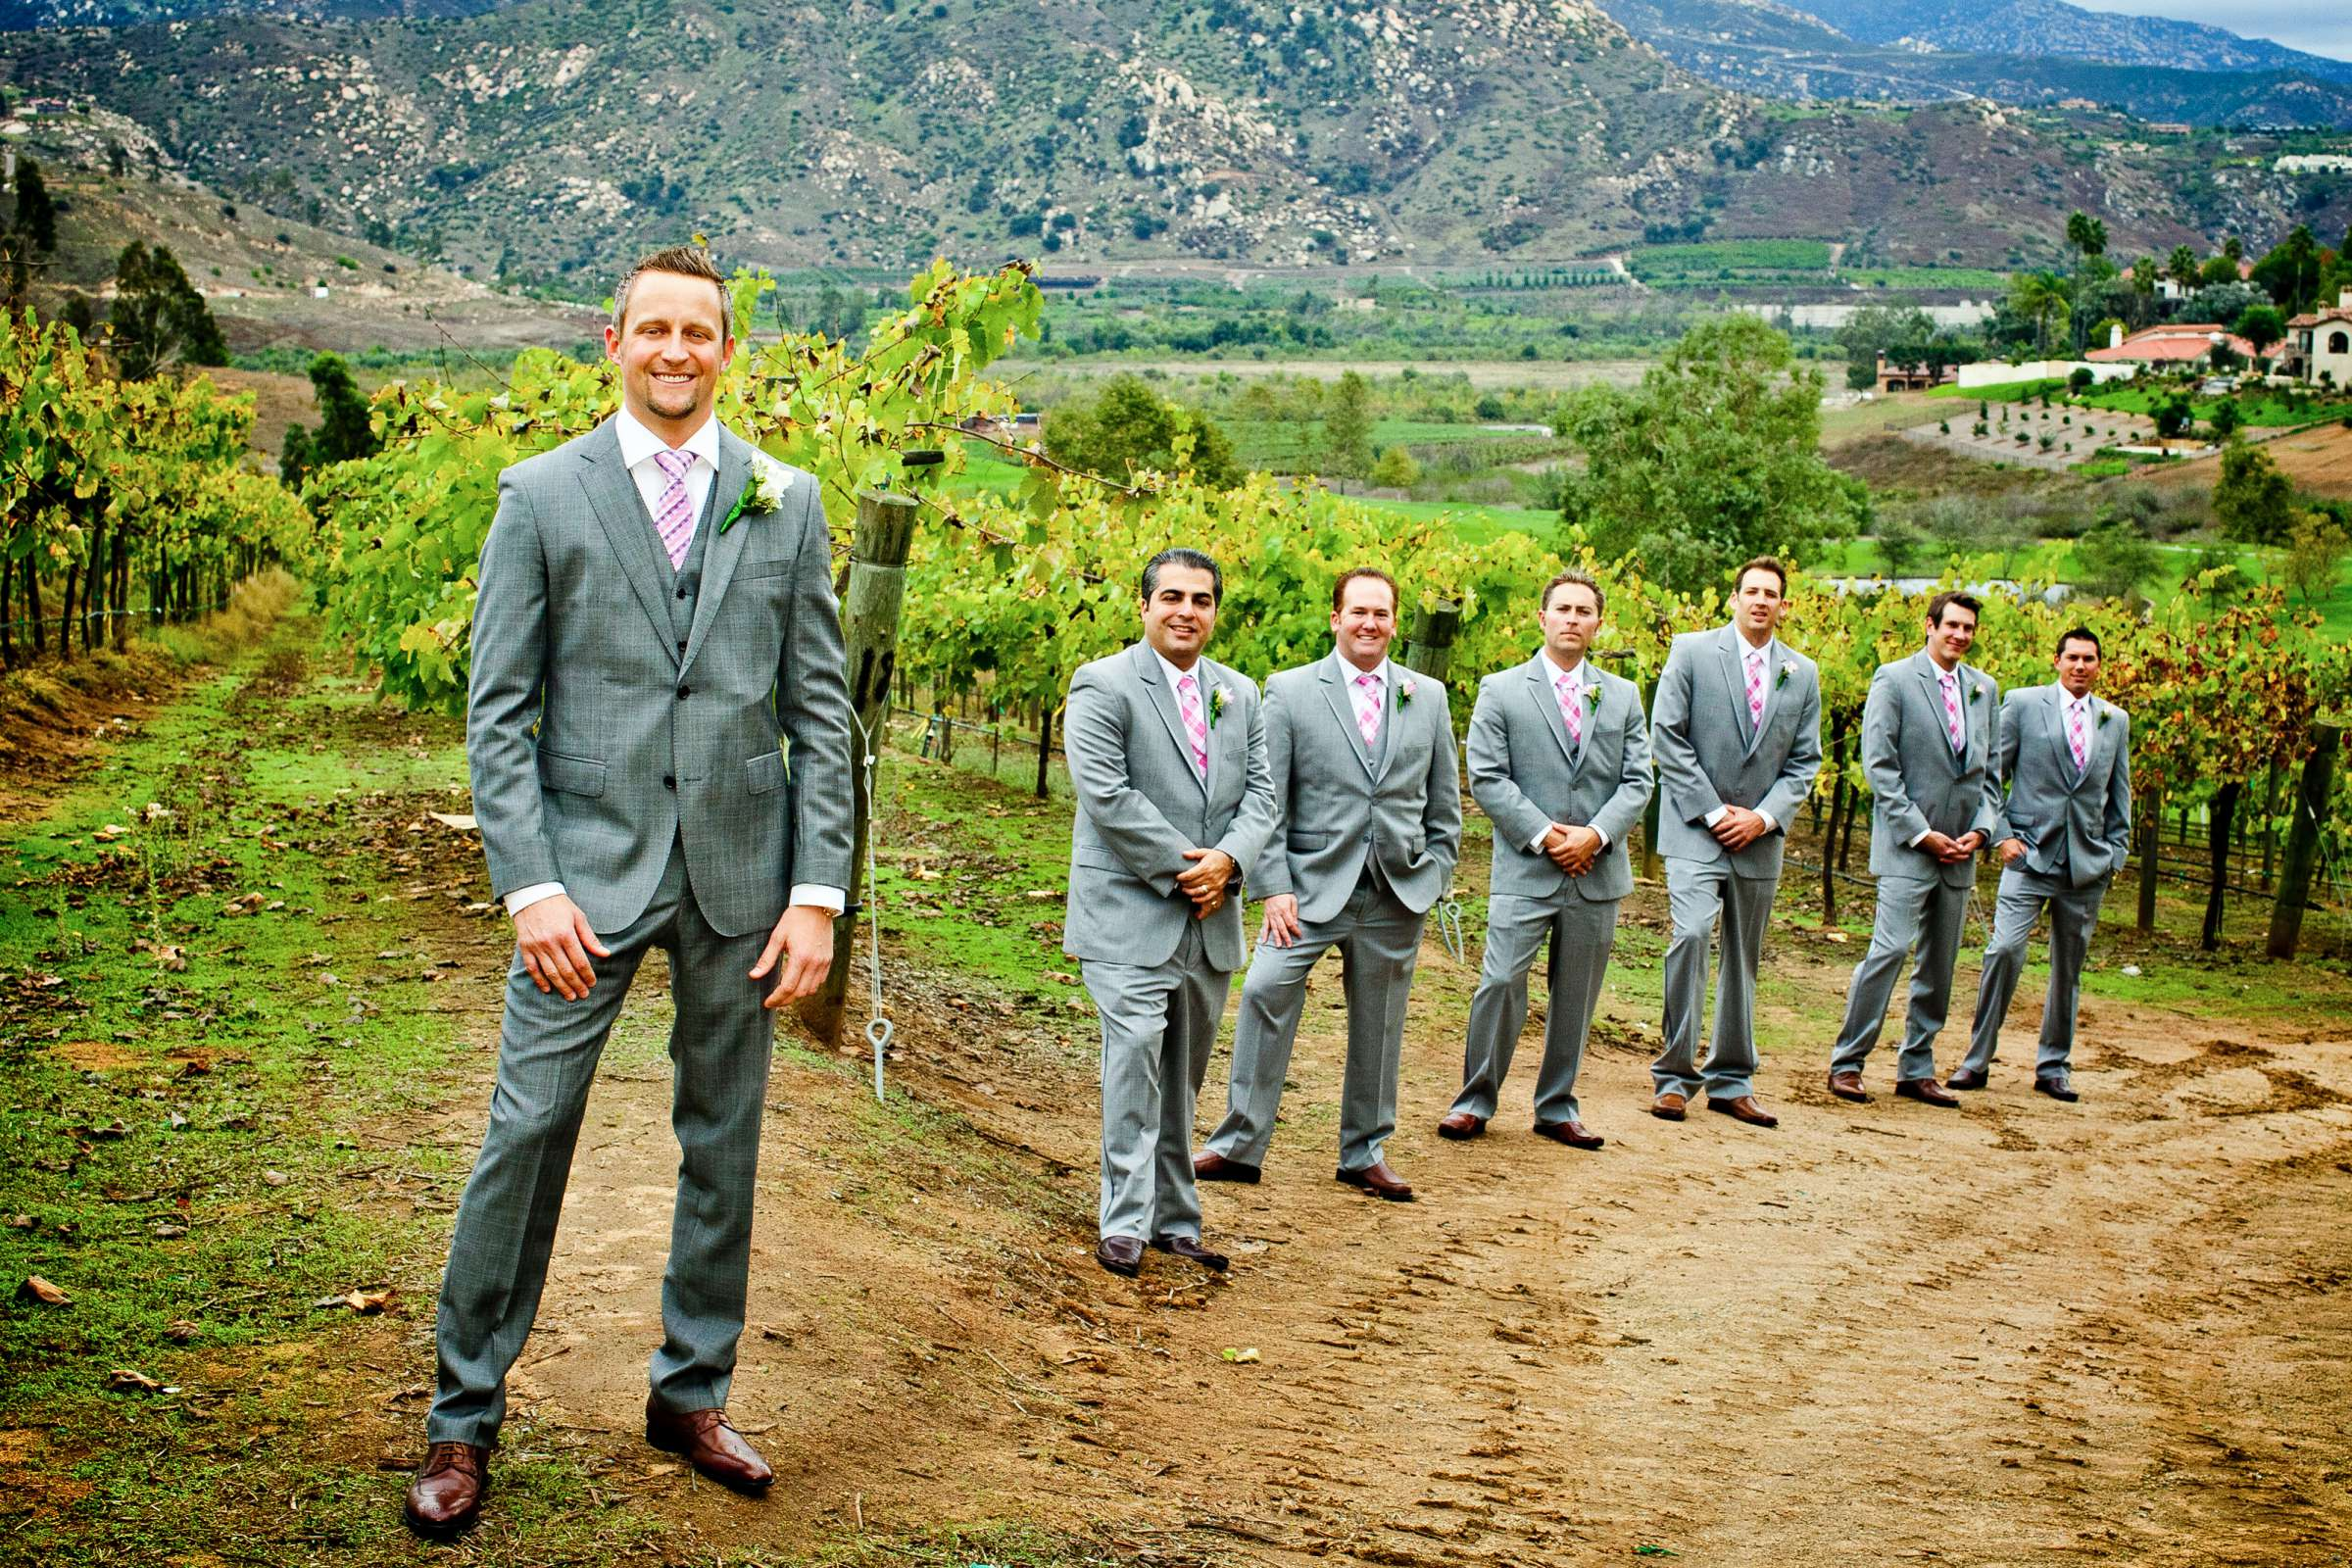 Orfila Vineyards Wedding, Mindy and Bryan Wedding Photo #16 by True Photography